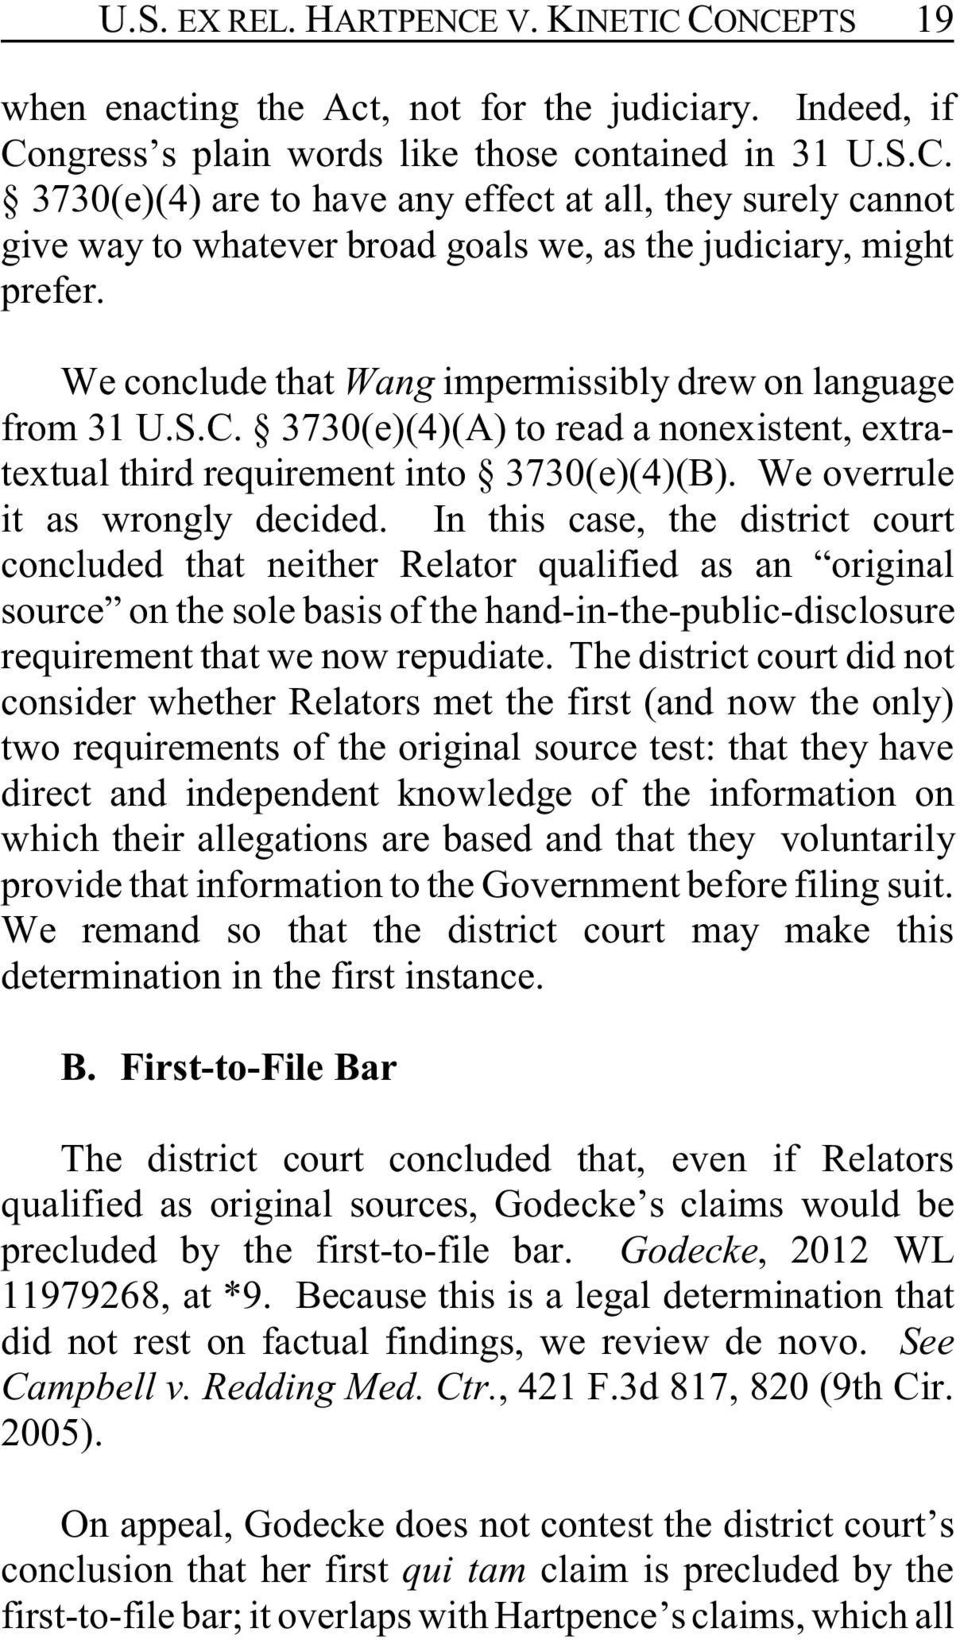 In this case, the district court concluded that neither Relator qualified as an original source on the sole basis of the hand-in-the-public-disclosure requirement that we now repudiate.